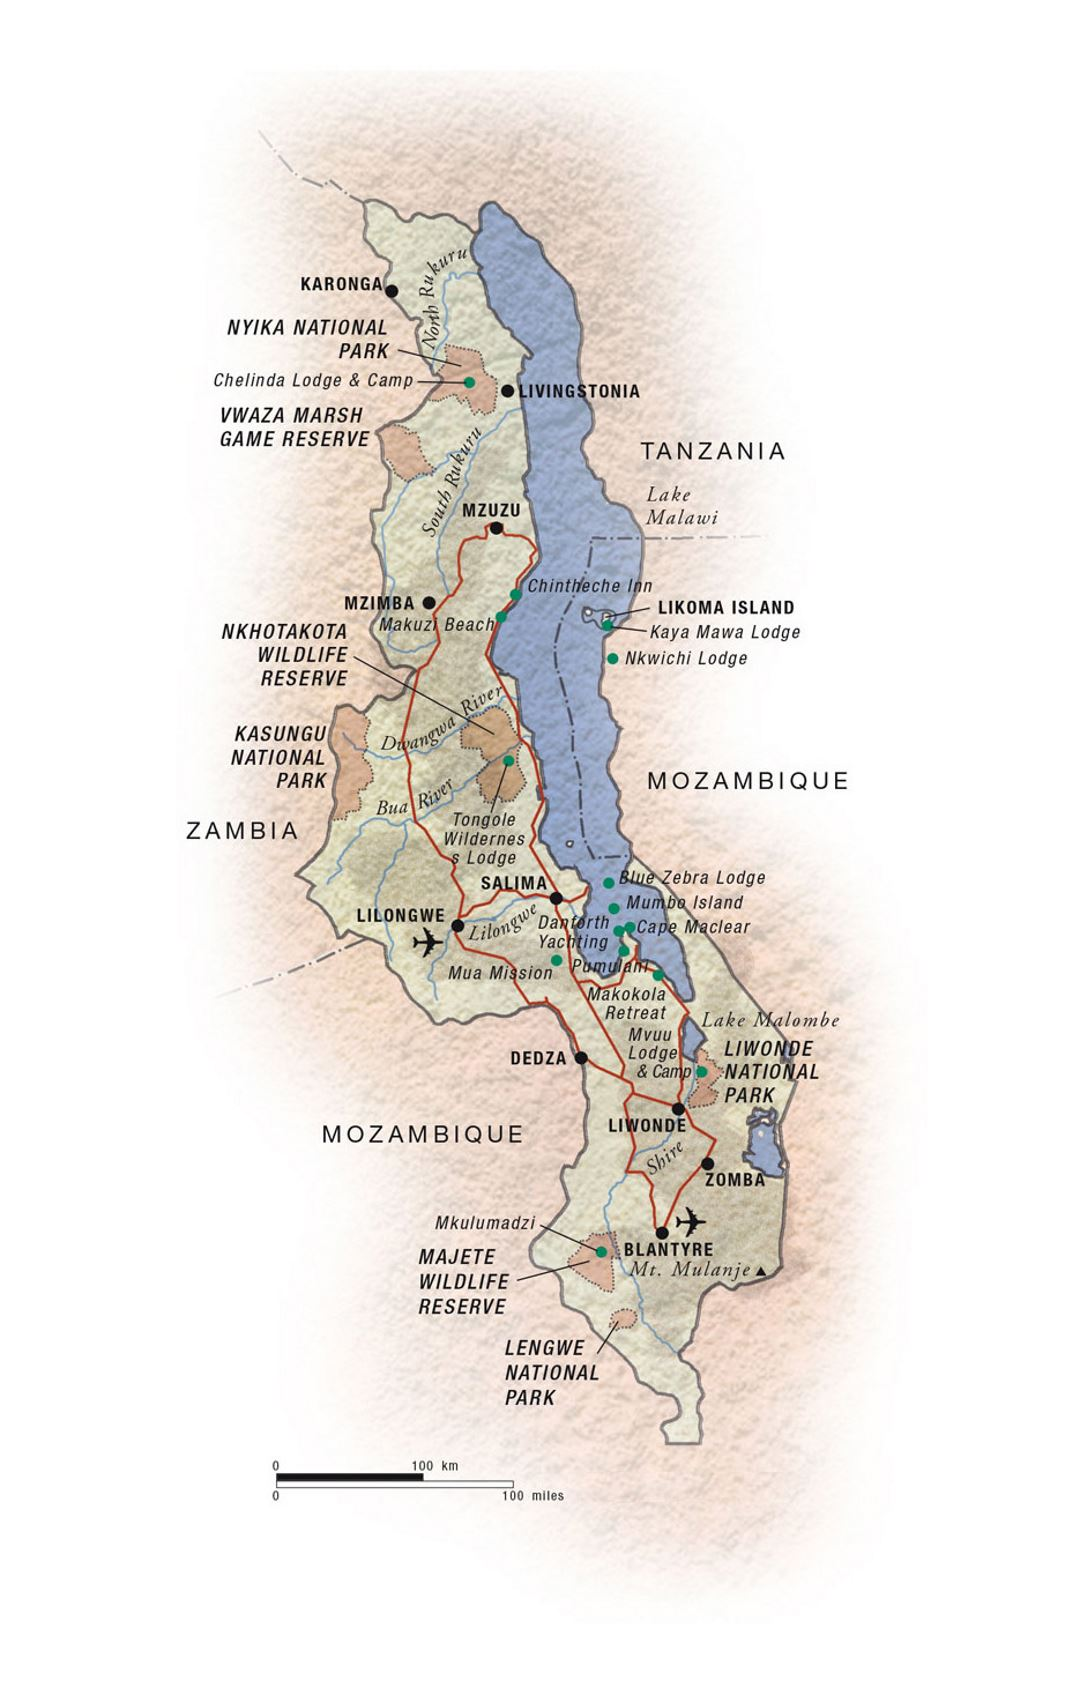 Detailed national parks map of Malawi